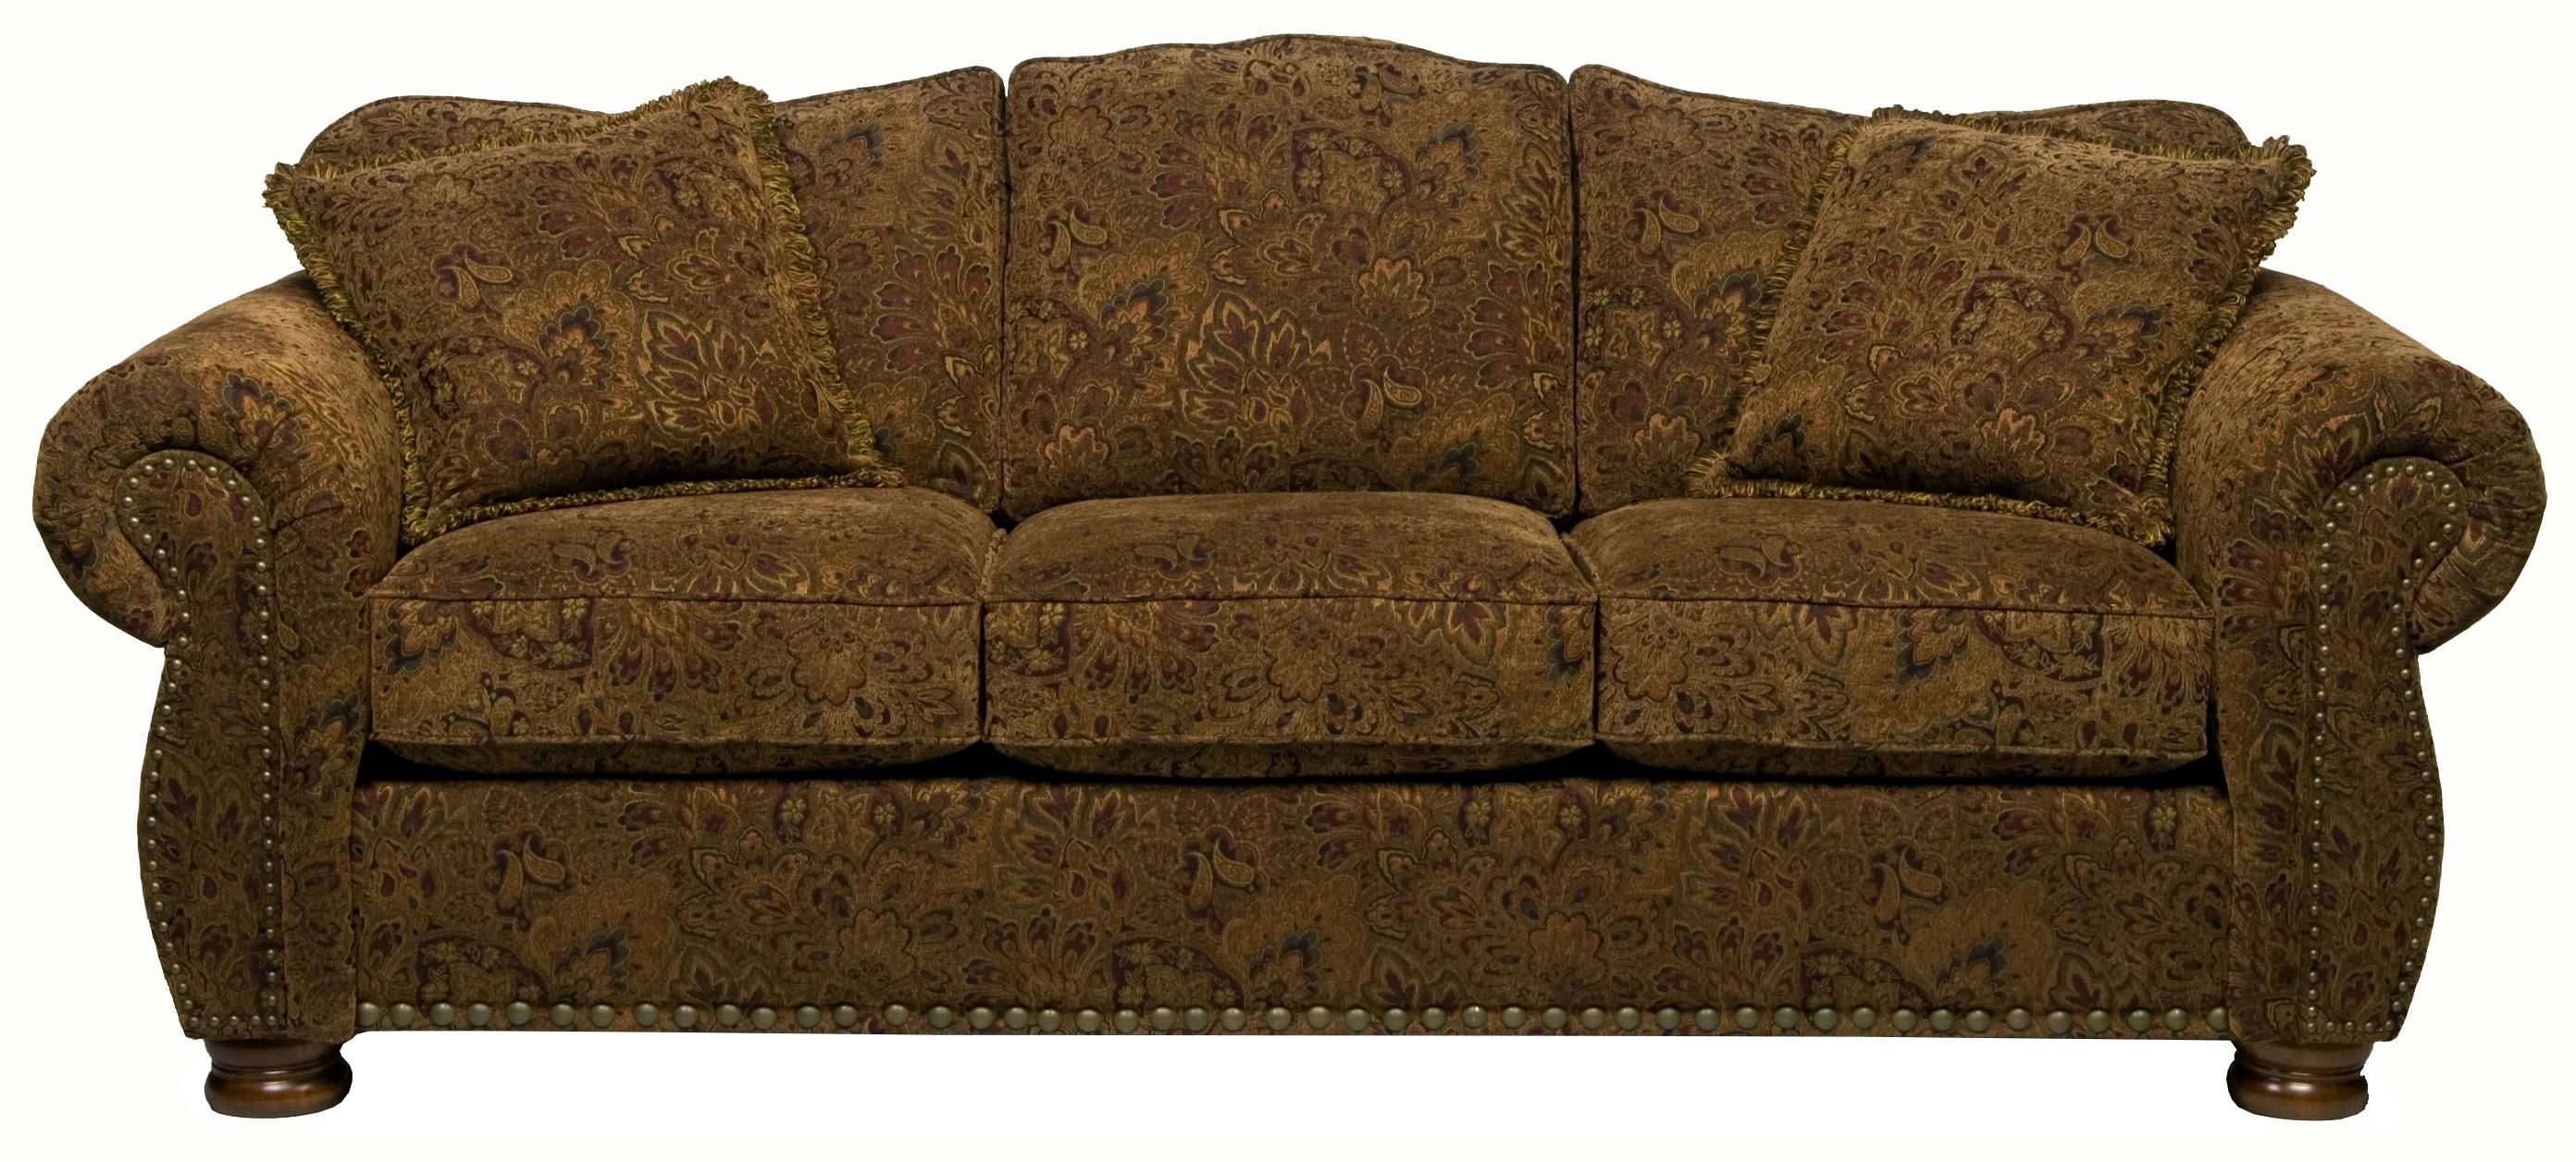 Swell 326 Camel Back Sofa By Stanton Sofas Stanton Furniture Download Free Architecture Designs Viewormadebymaigaardcom